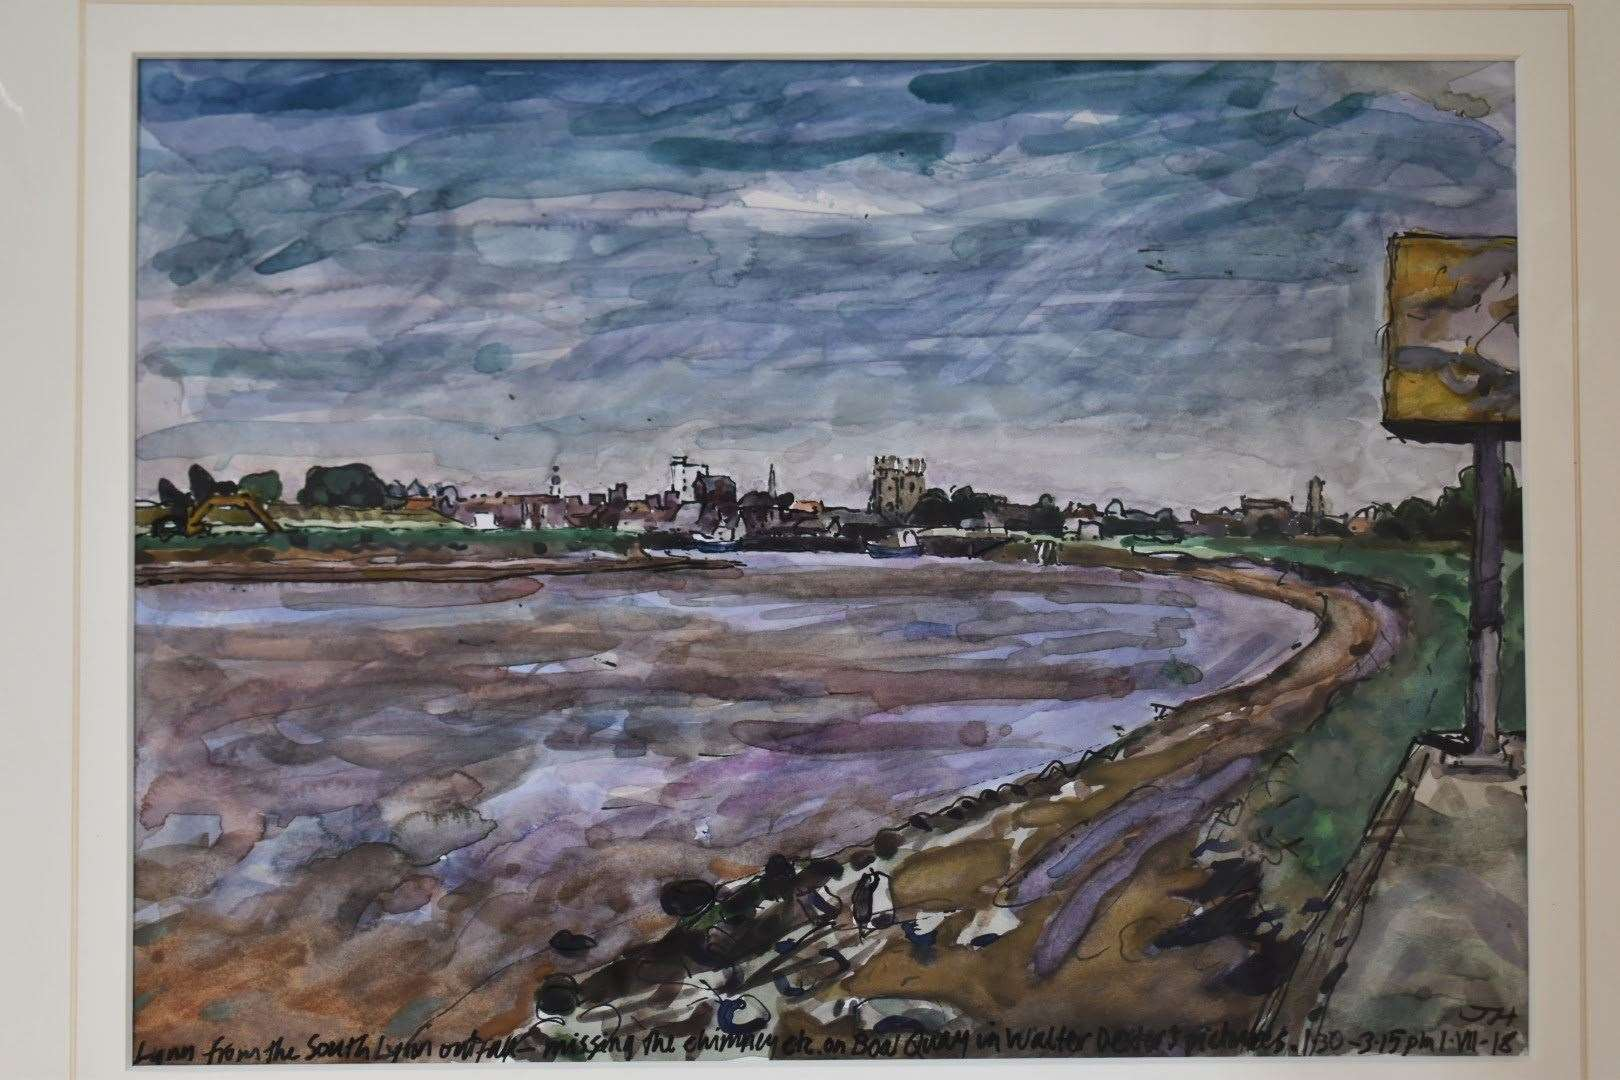 Jon's work below shows King's Lynn, South Quay, Boal Quay and Minster seen from one of famed ynn artist Walter Dexter's favoured spots on the banks of the River Ouse at South Lynn. (8696484)